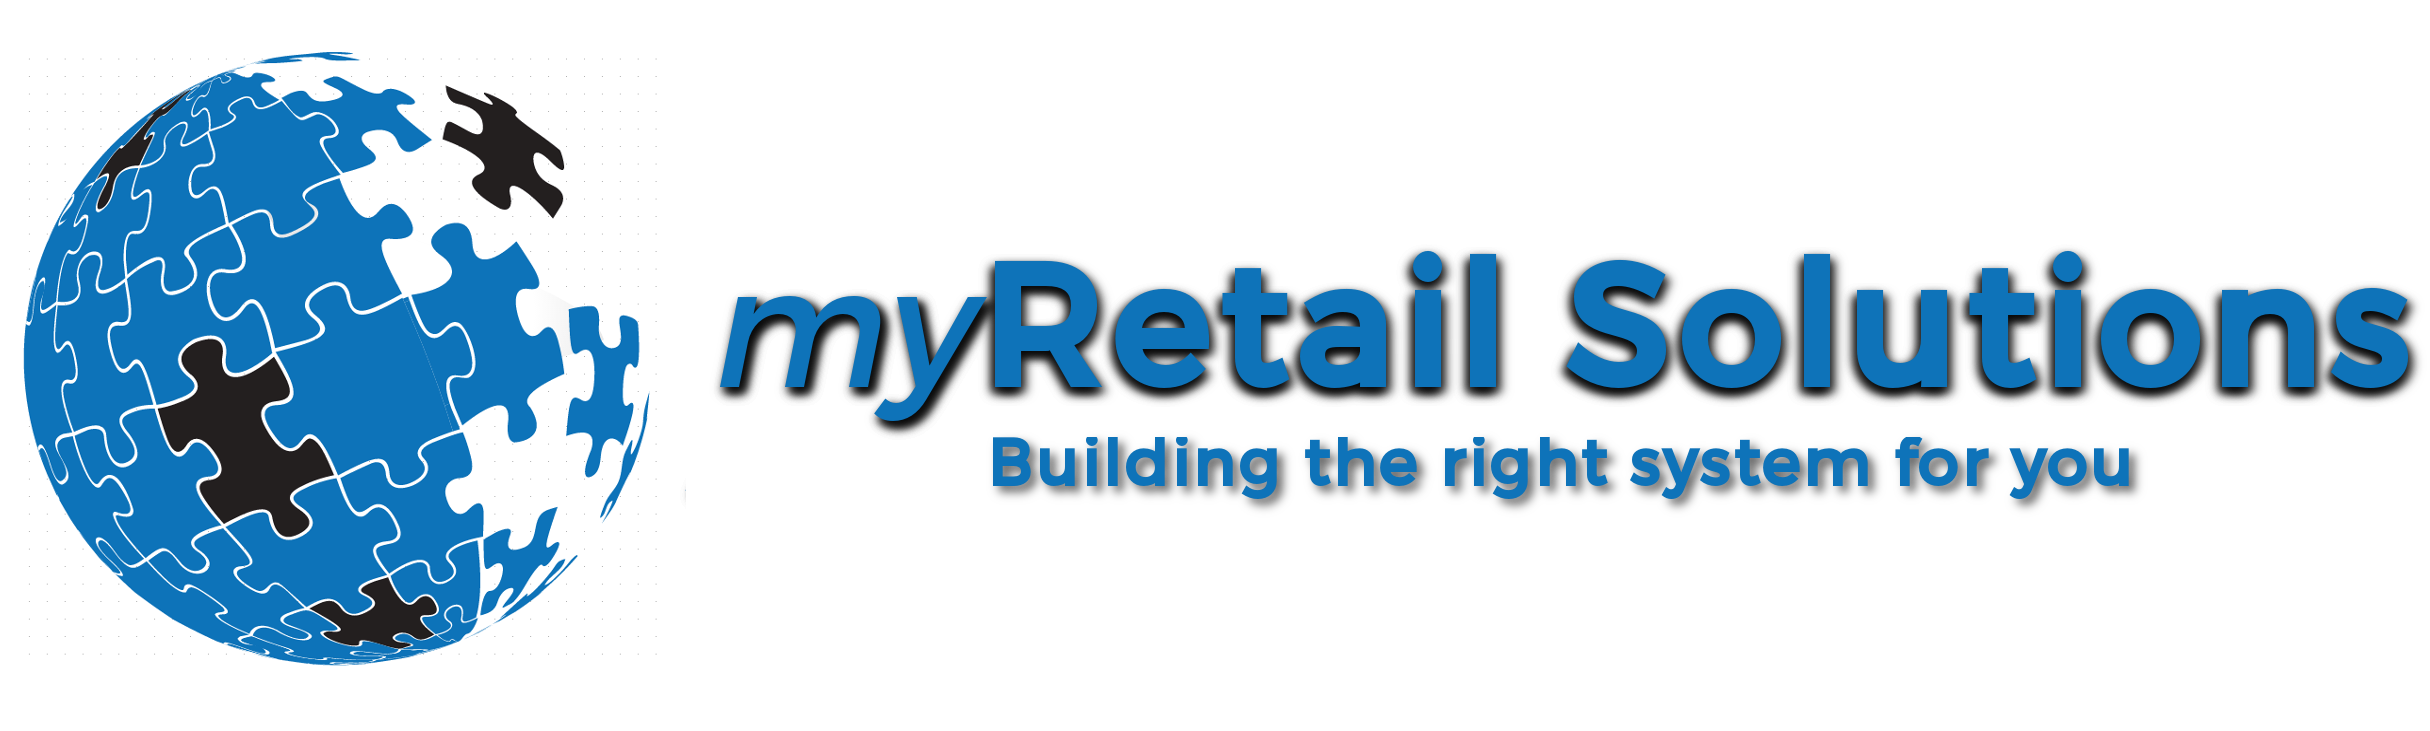 myRetail Solutions